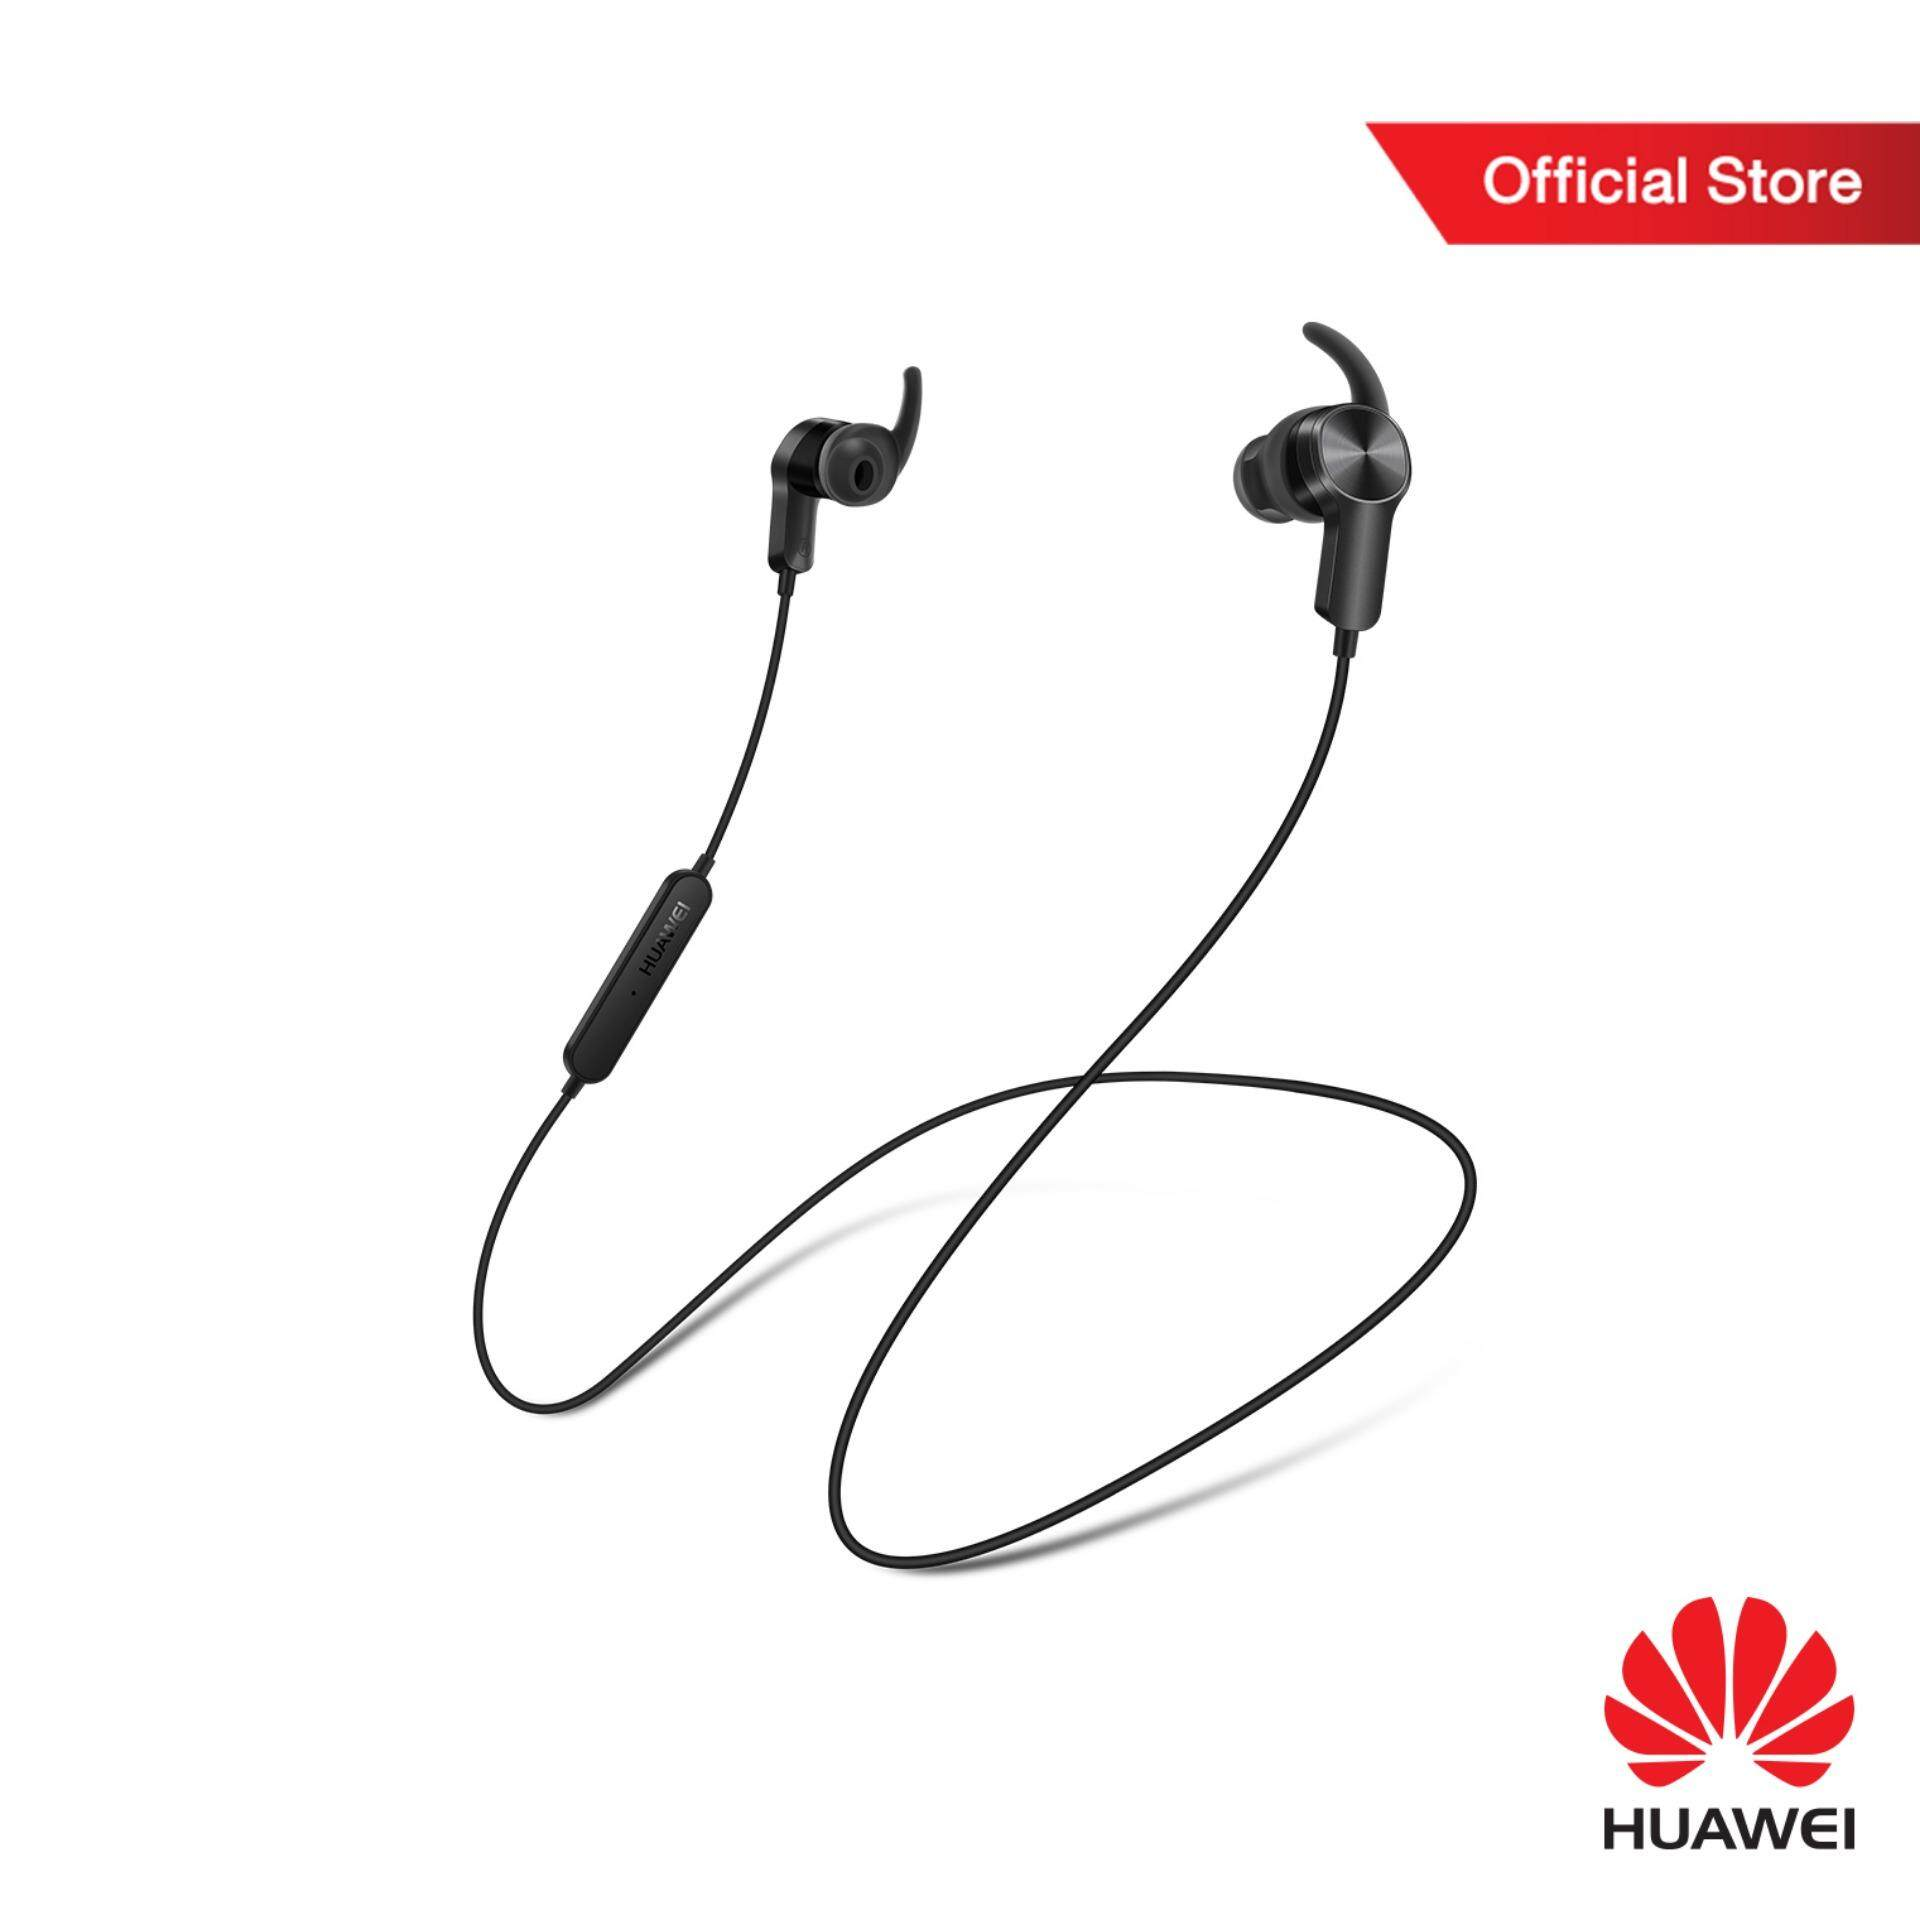 ซื้อ Huawei Sport Bluetooth Headphones Black ออนไลน์